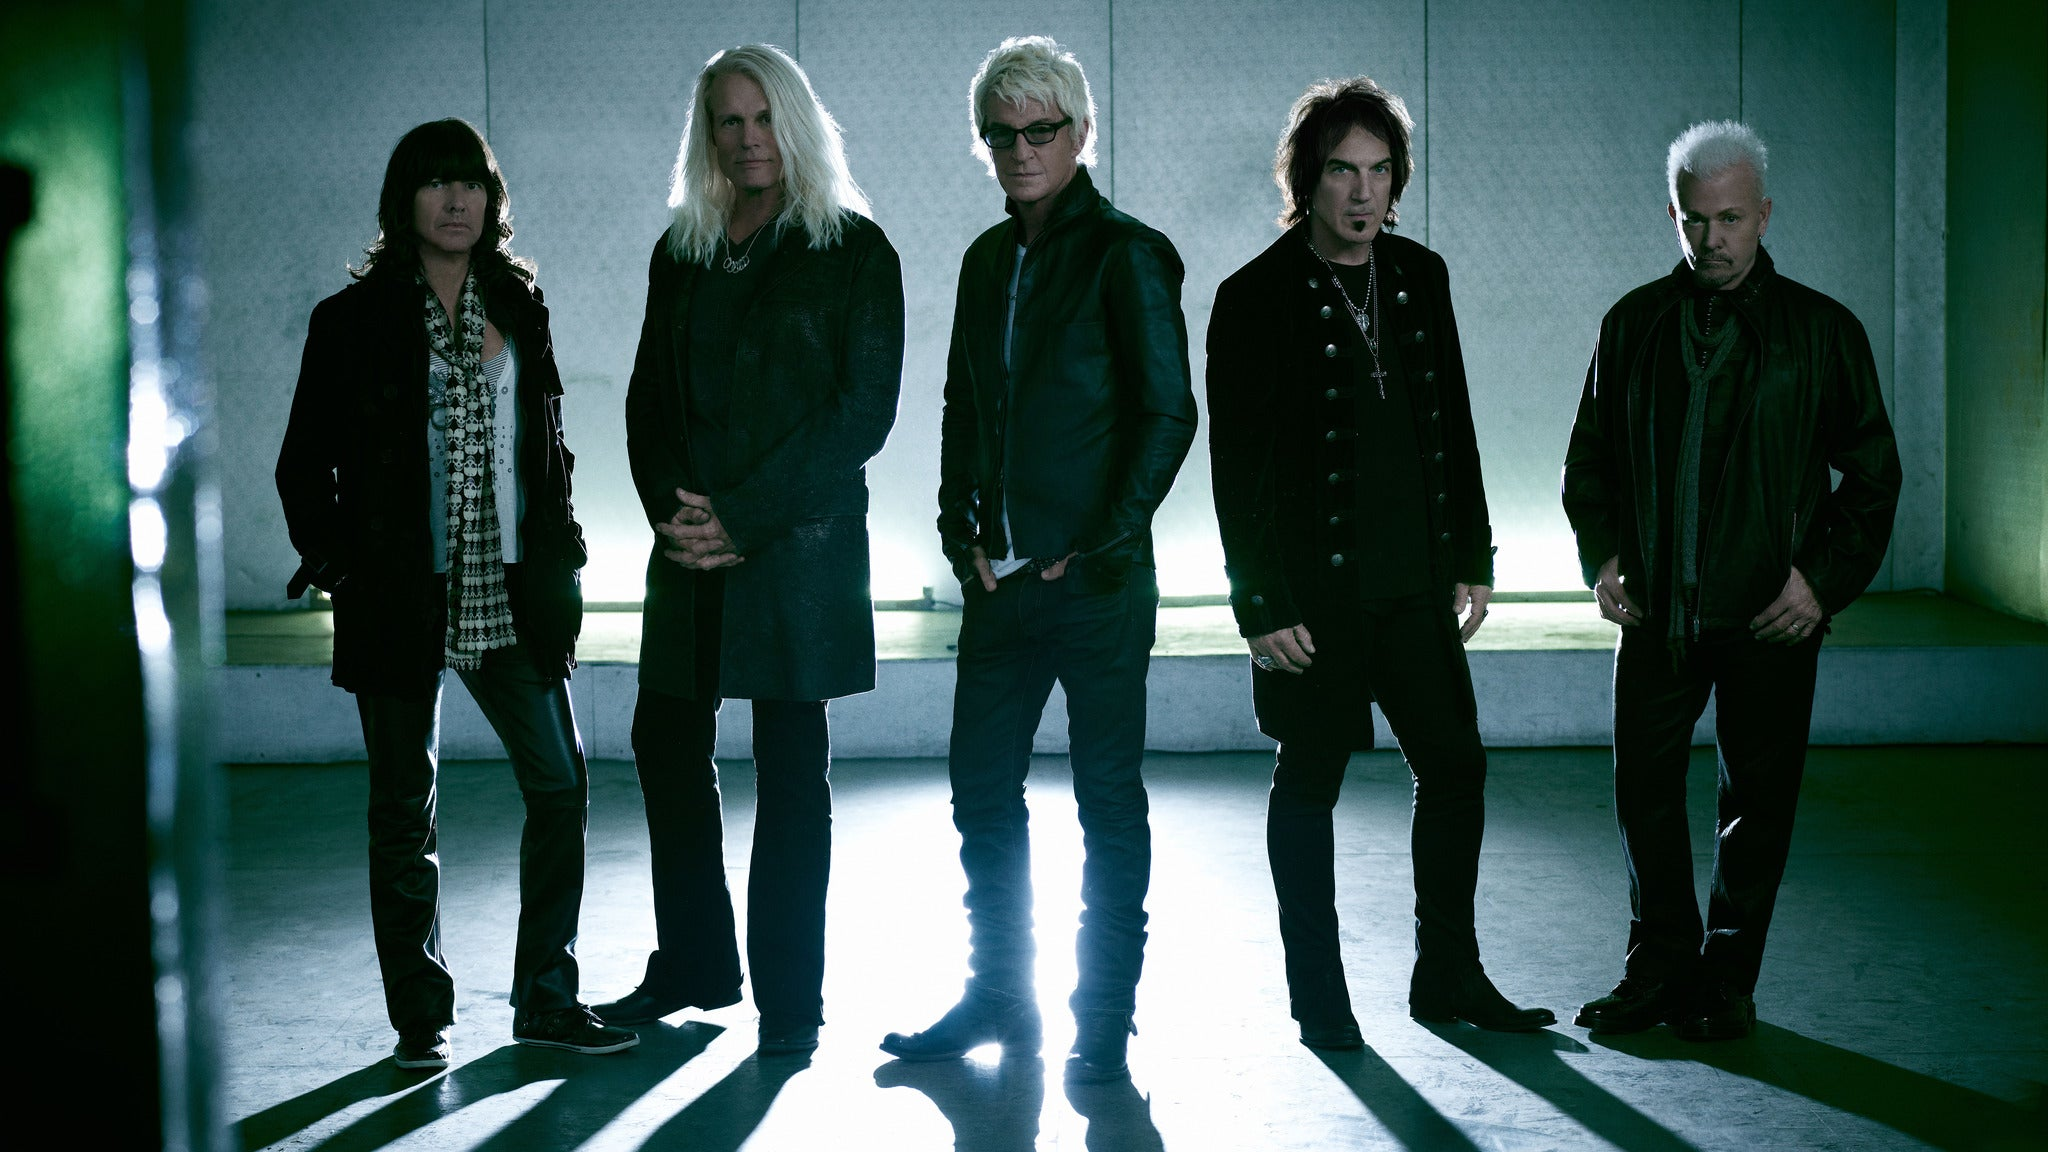 REO Speedwagon at King Performing Arts Center